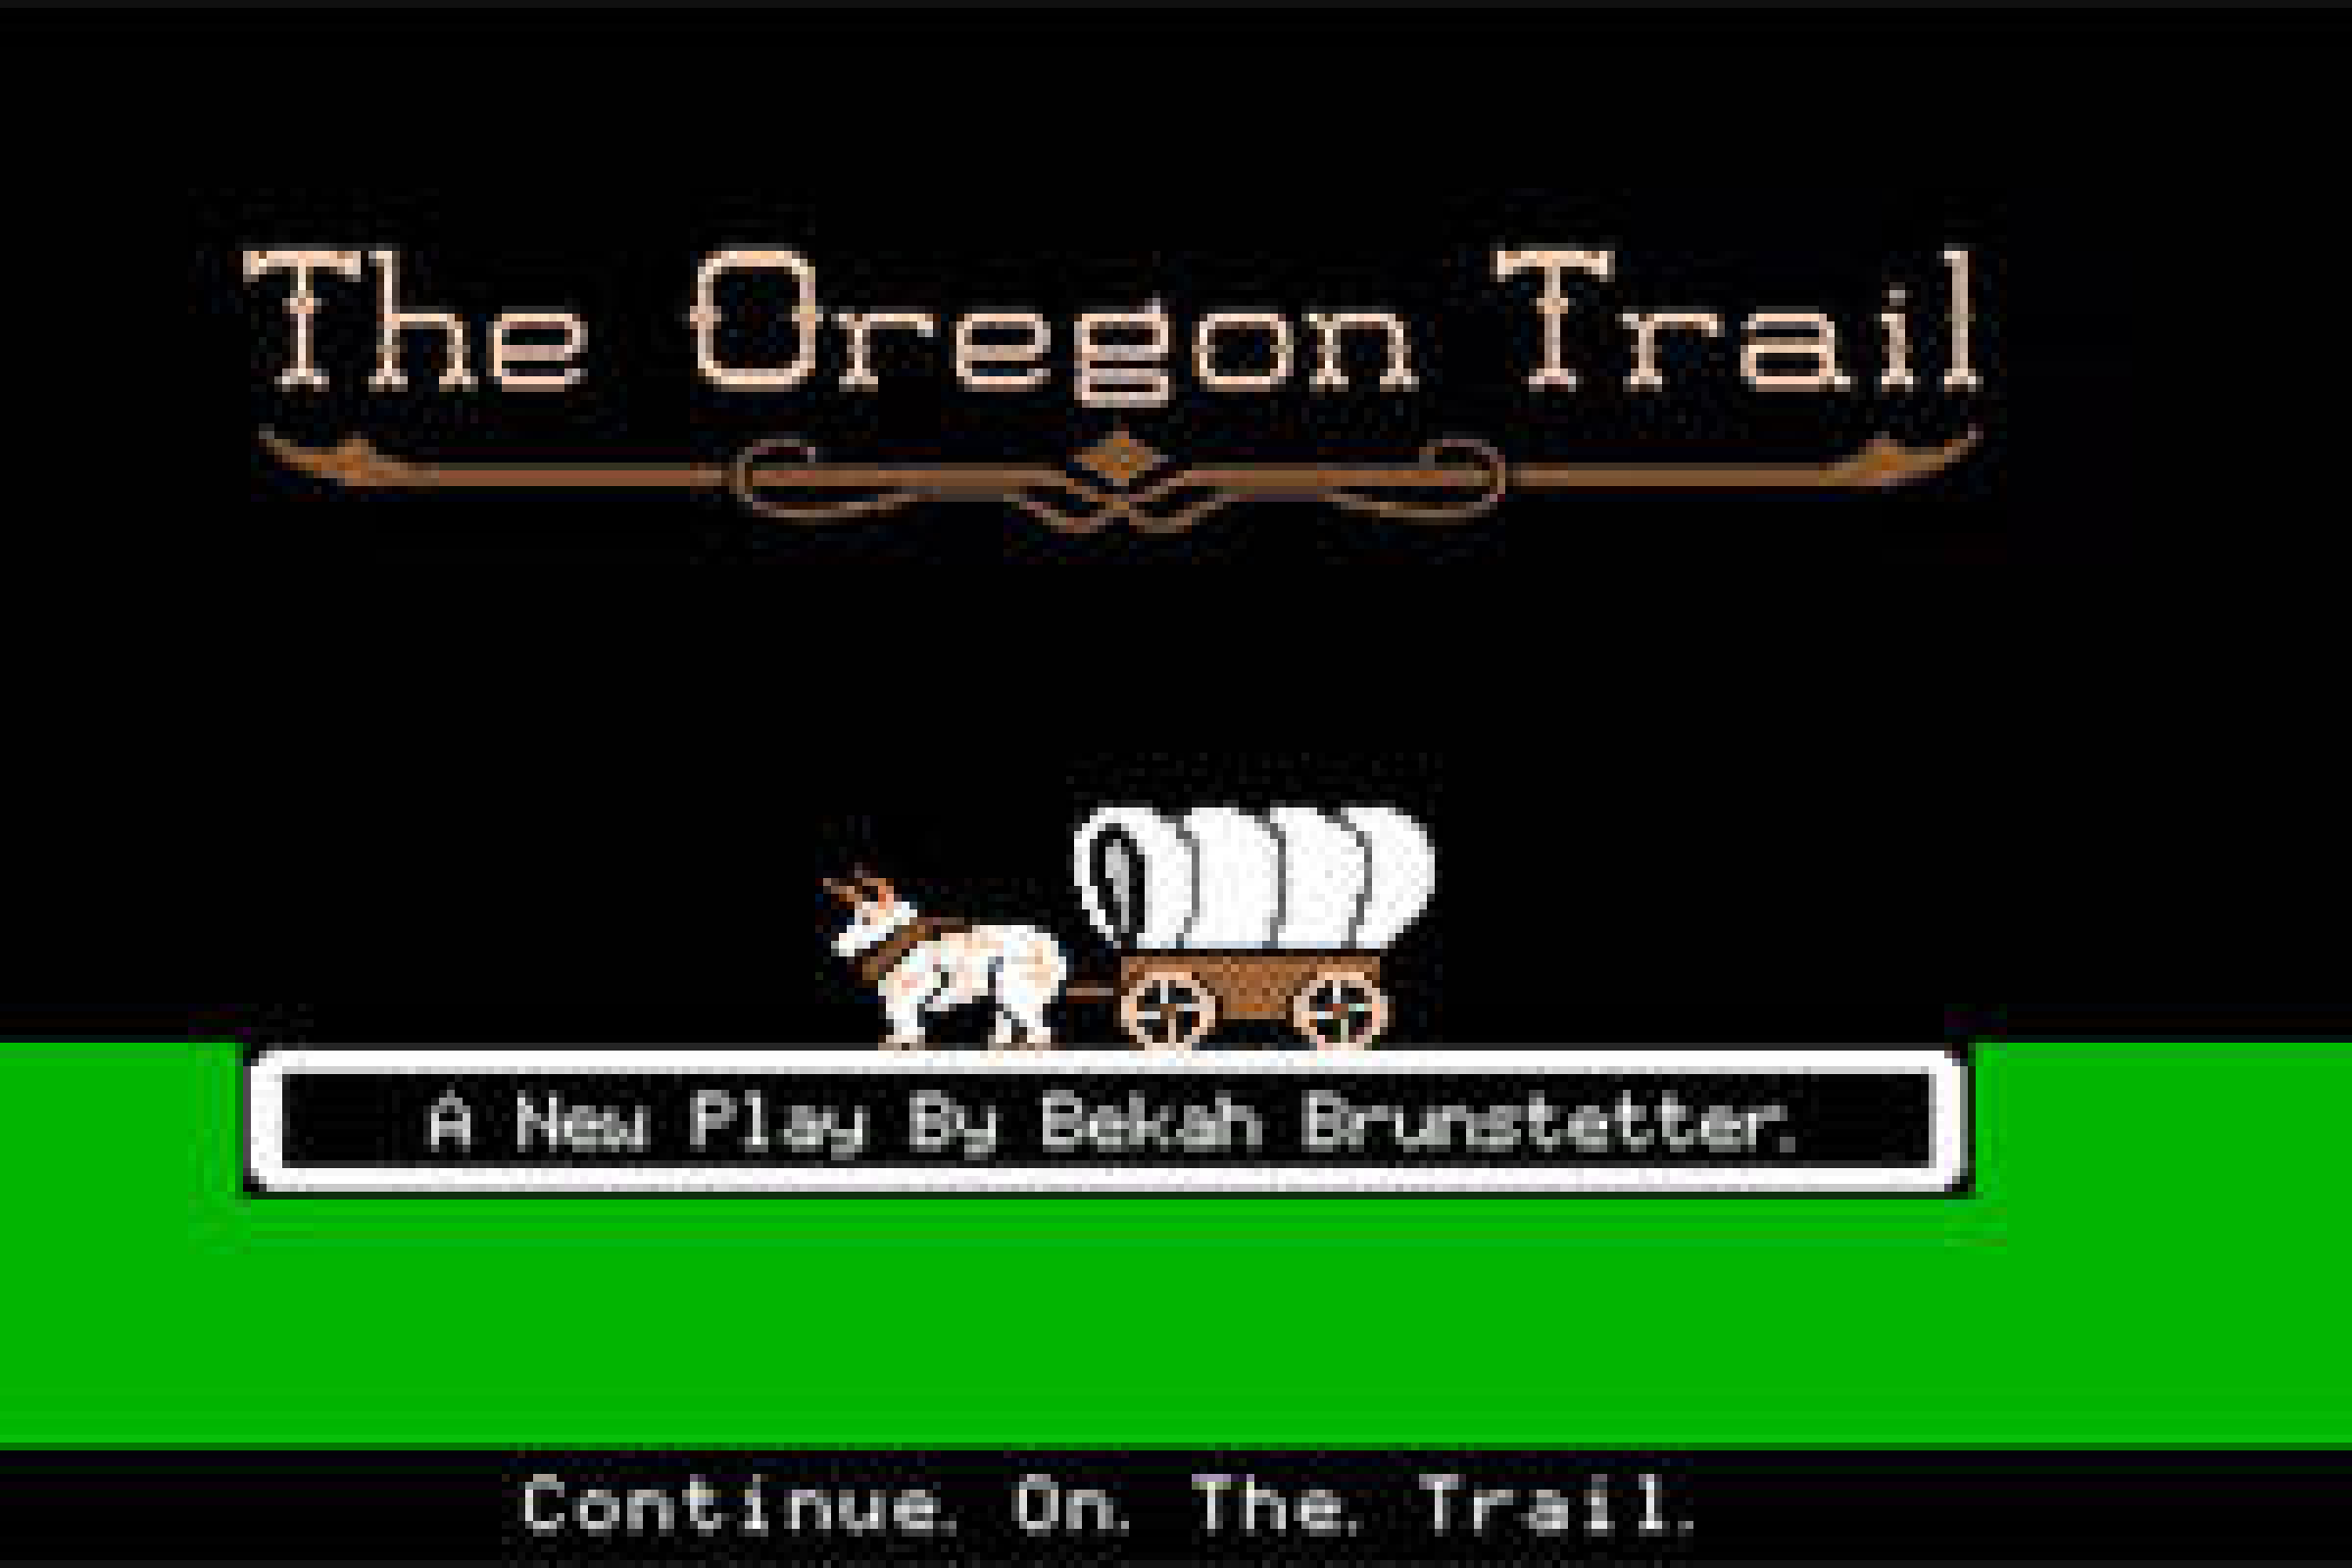 The Oregon Trail (Closed February 12, 2017) | Off-Broadway ...